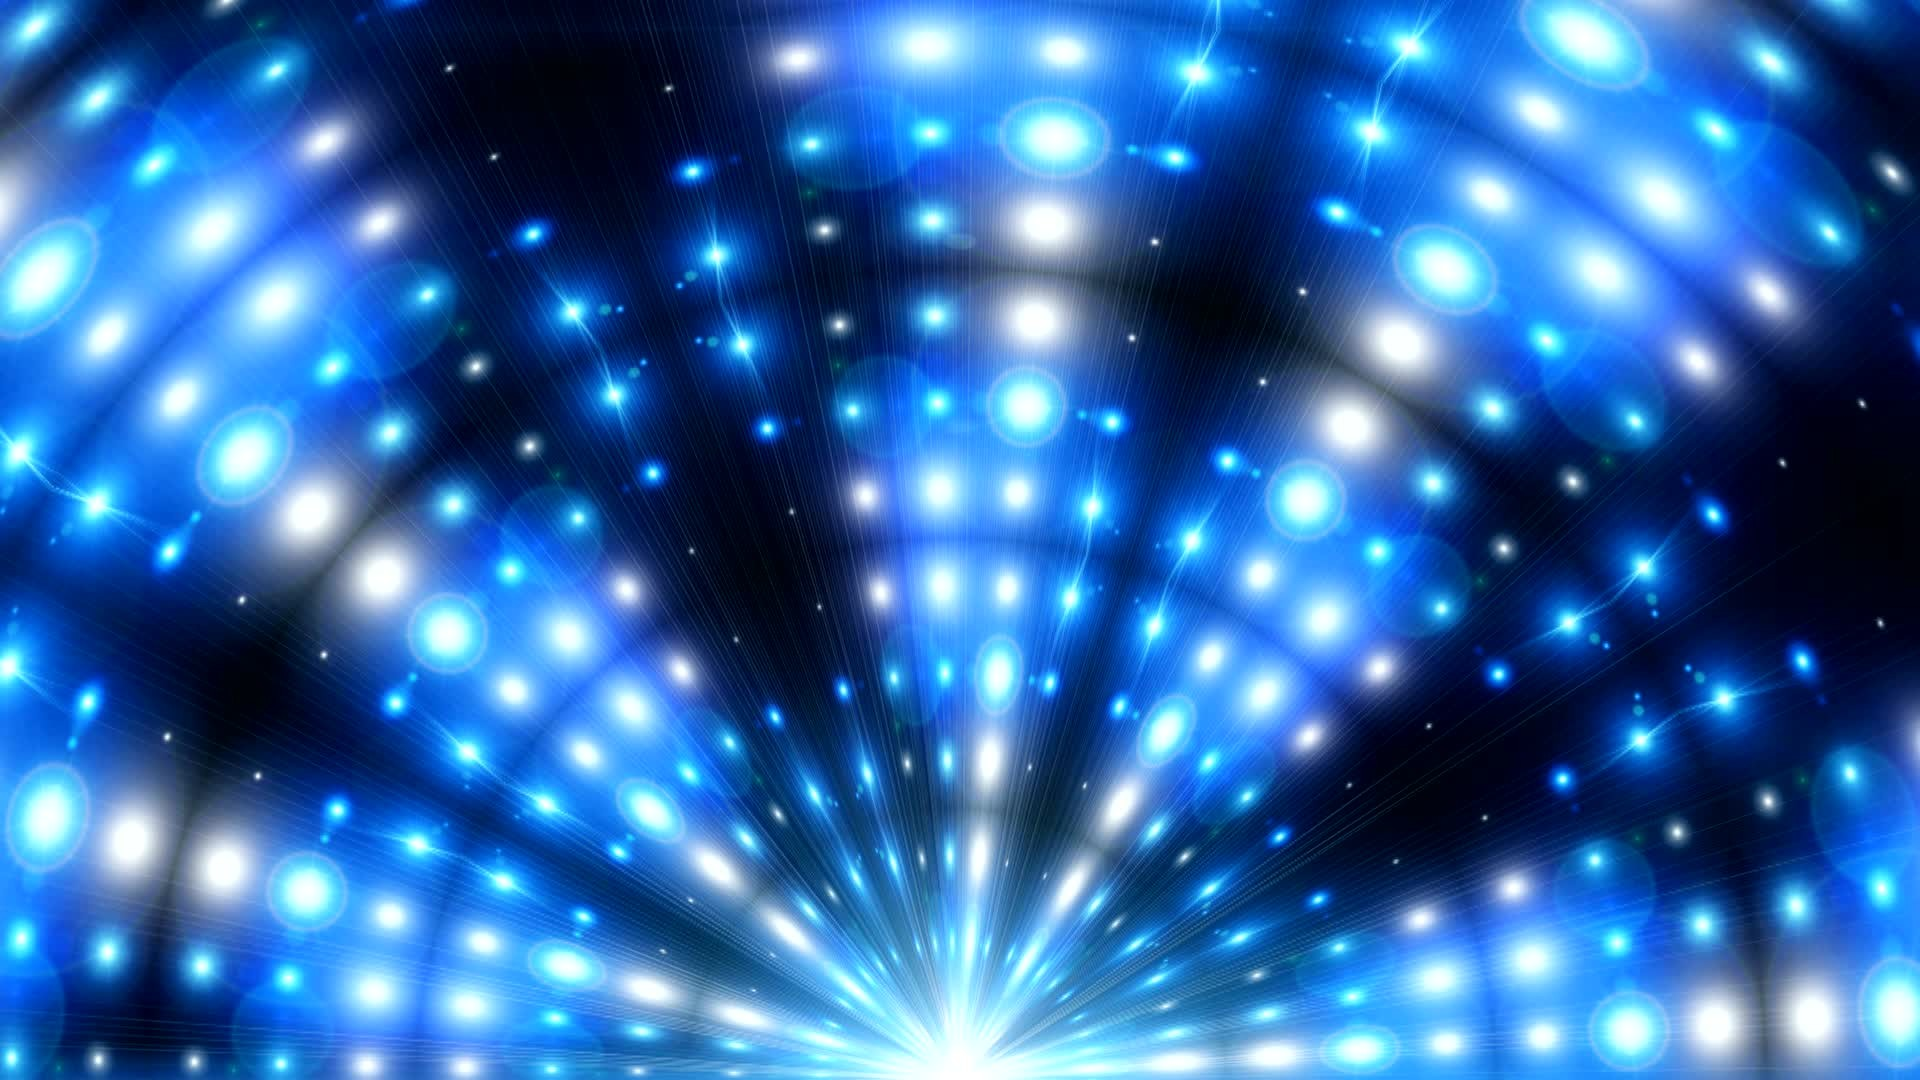 Stage Backgrounds (39  images) for Concert Stage Lights Background  269ane